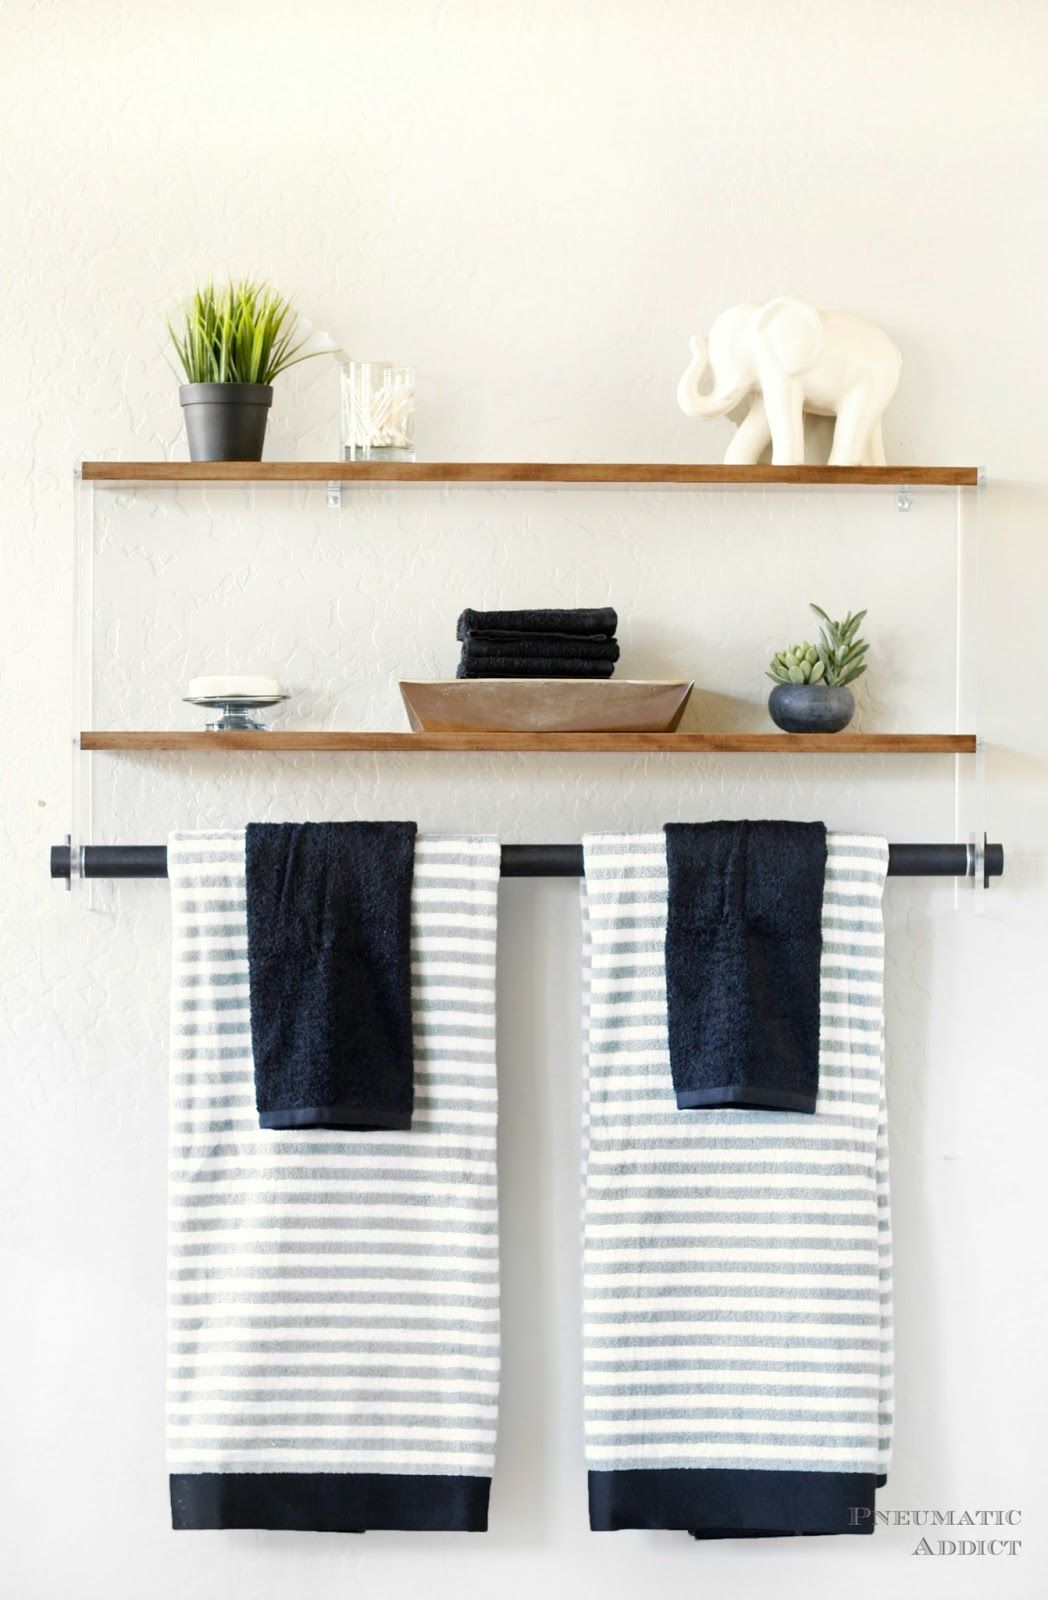 Challenge Yourself With Some Simple DIY Storage Ideas | DIY storage ...